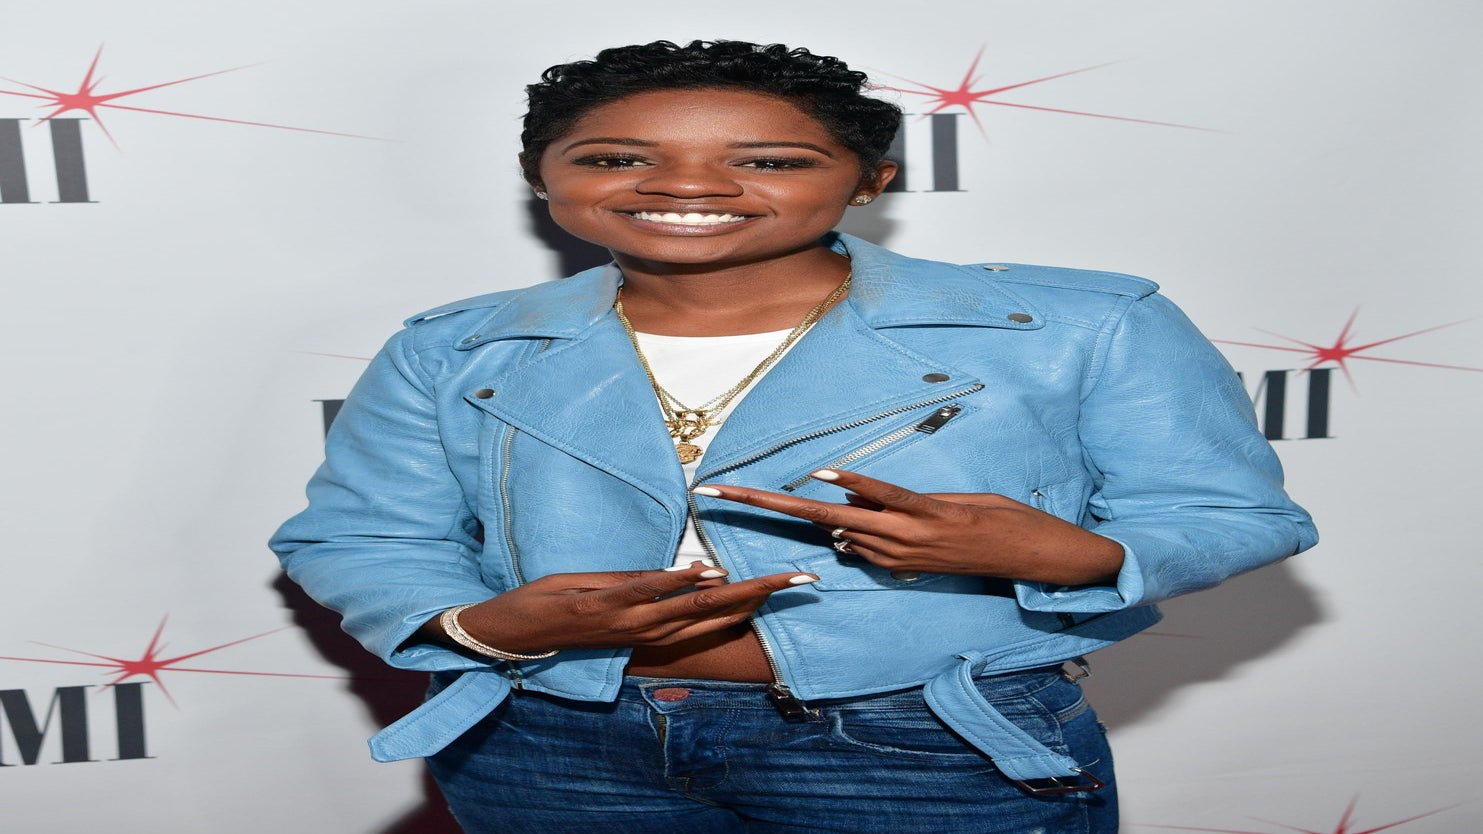 You'll Never Guess Who Styles Freda Gatz's Hair